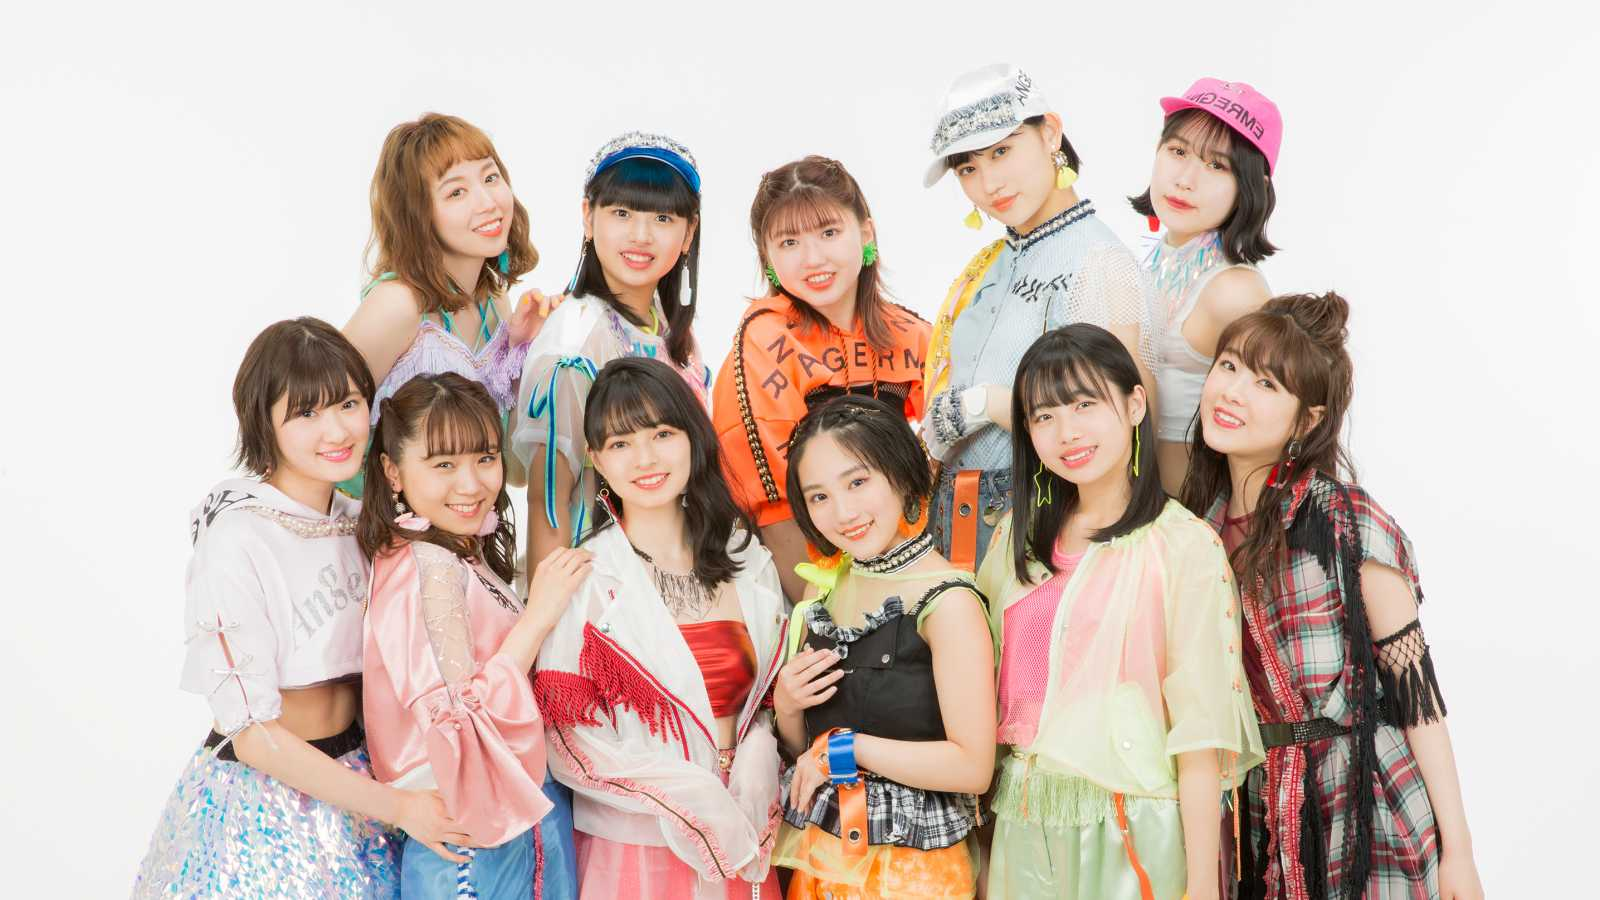 ANGERME llega a México © DC FACTORY. All rights reserved.